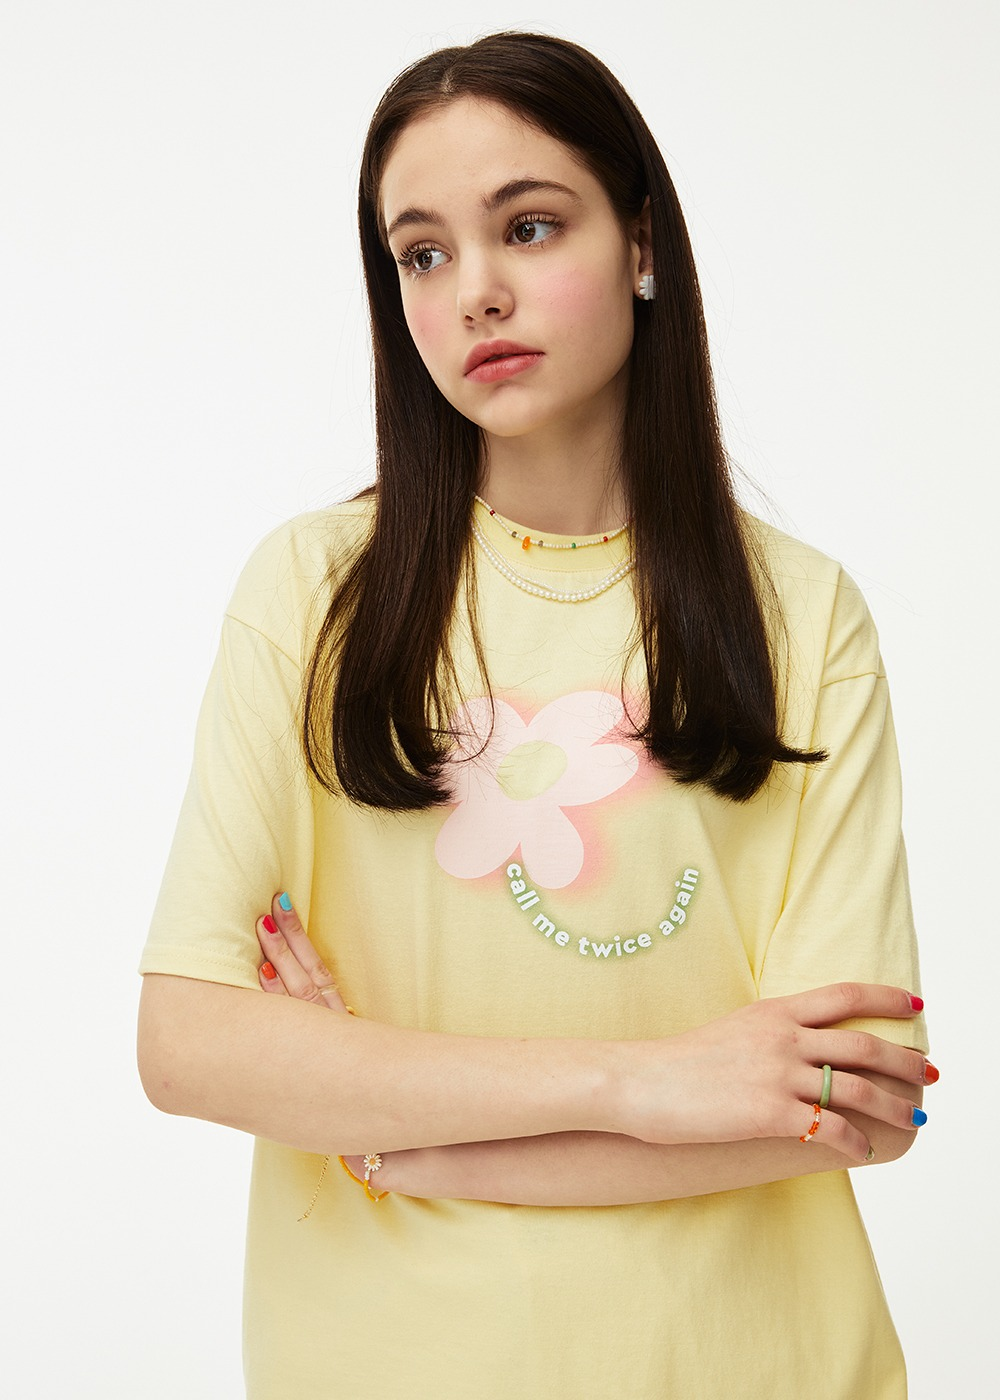 Flower Gradation T-shirt [LEMON SHERBET]Flower Gradation T-shirt [LEMON SHERBET]자체브랜드